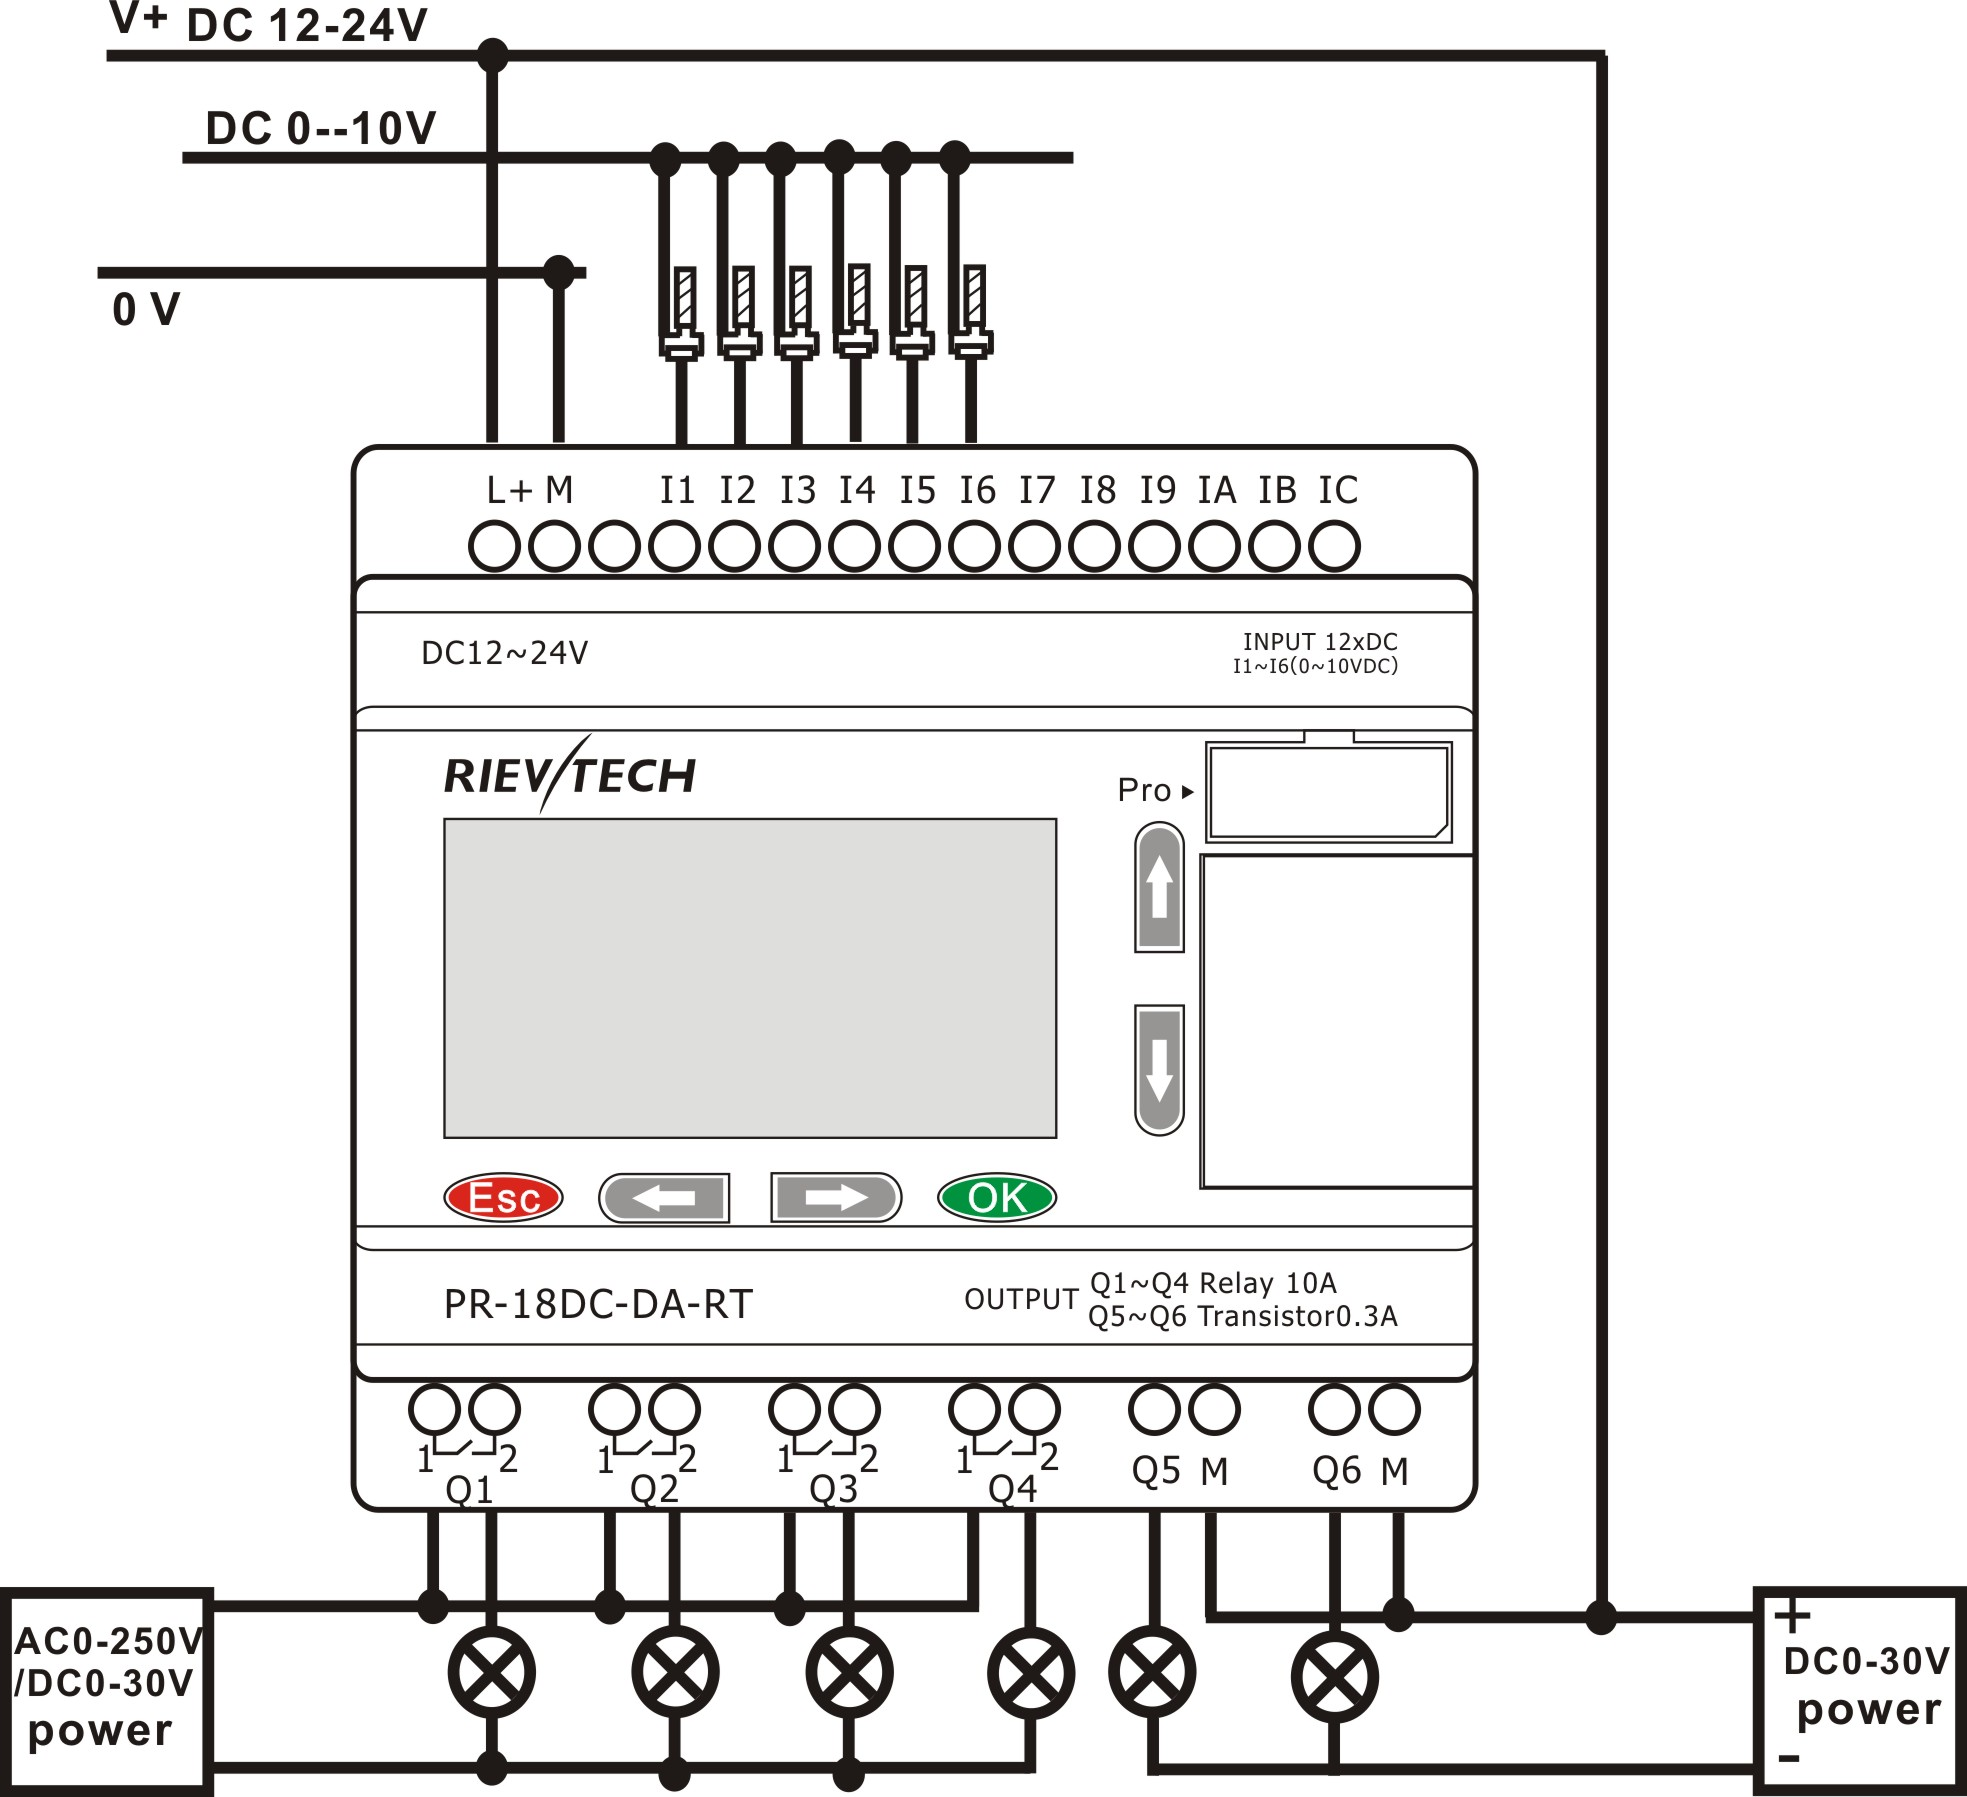 pr 18dc da rt buy plc sms plc siemens logo product on rievtech wiring diagram